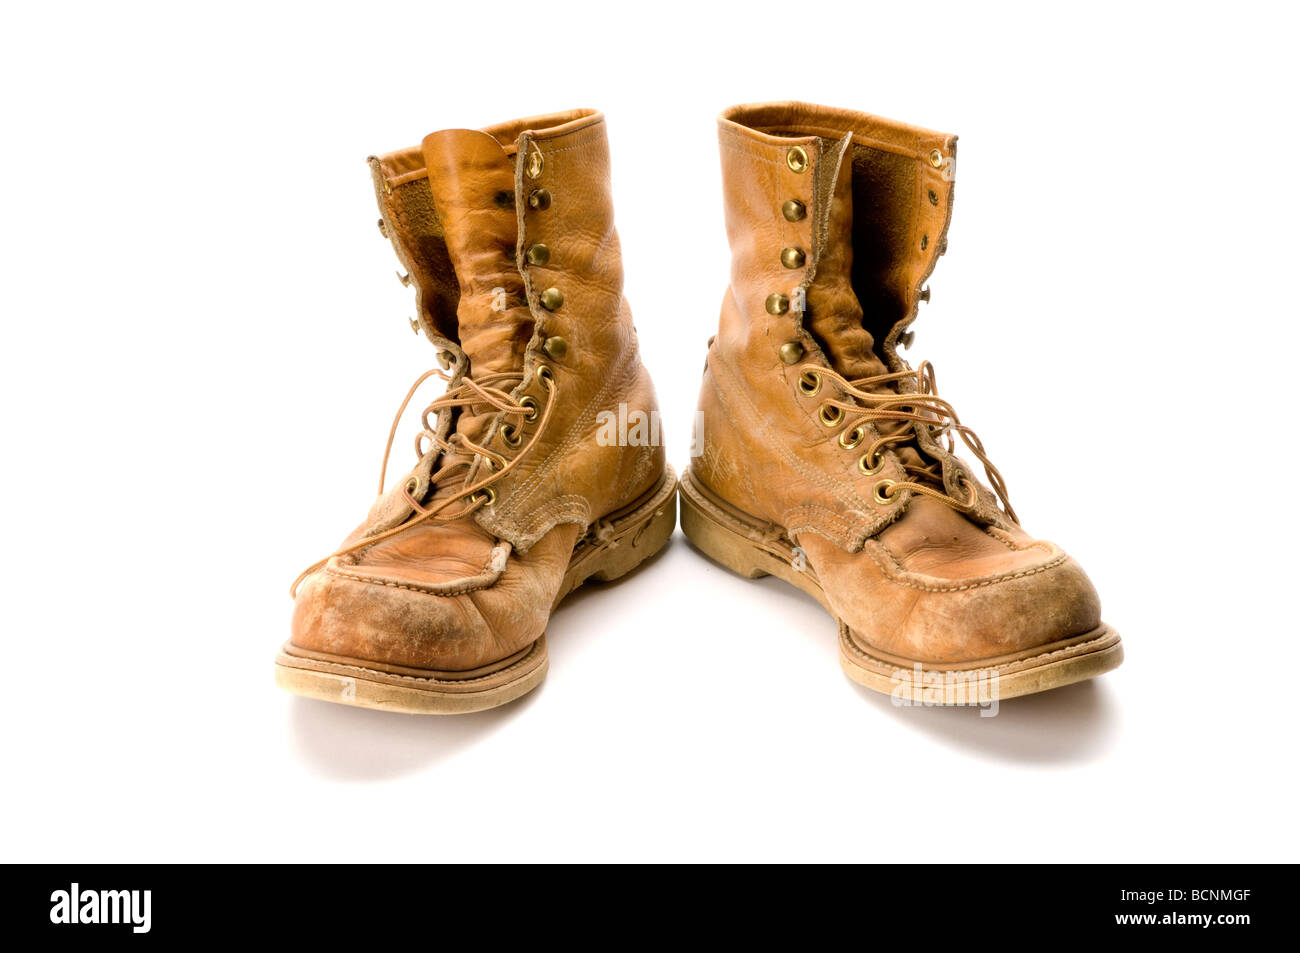 Old steel toed work boots on white background - Stock Image